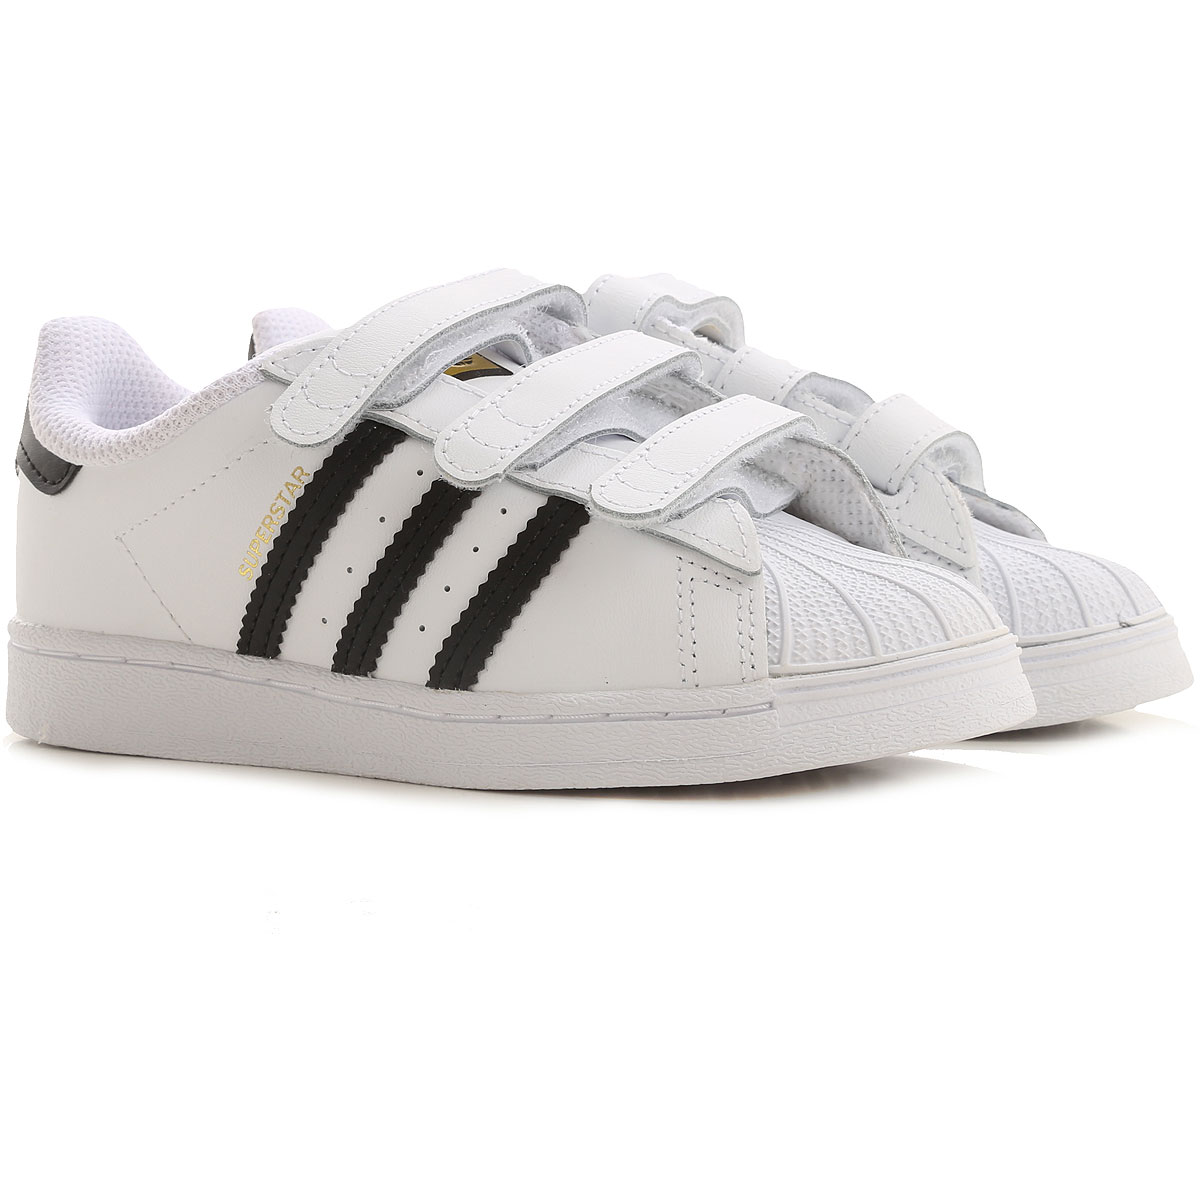 Adidas Kids Shoes for Boys On Sale, White, Leather, 2019, 20 26